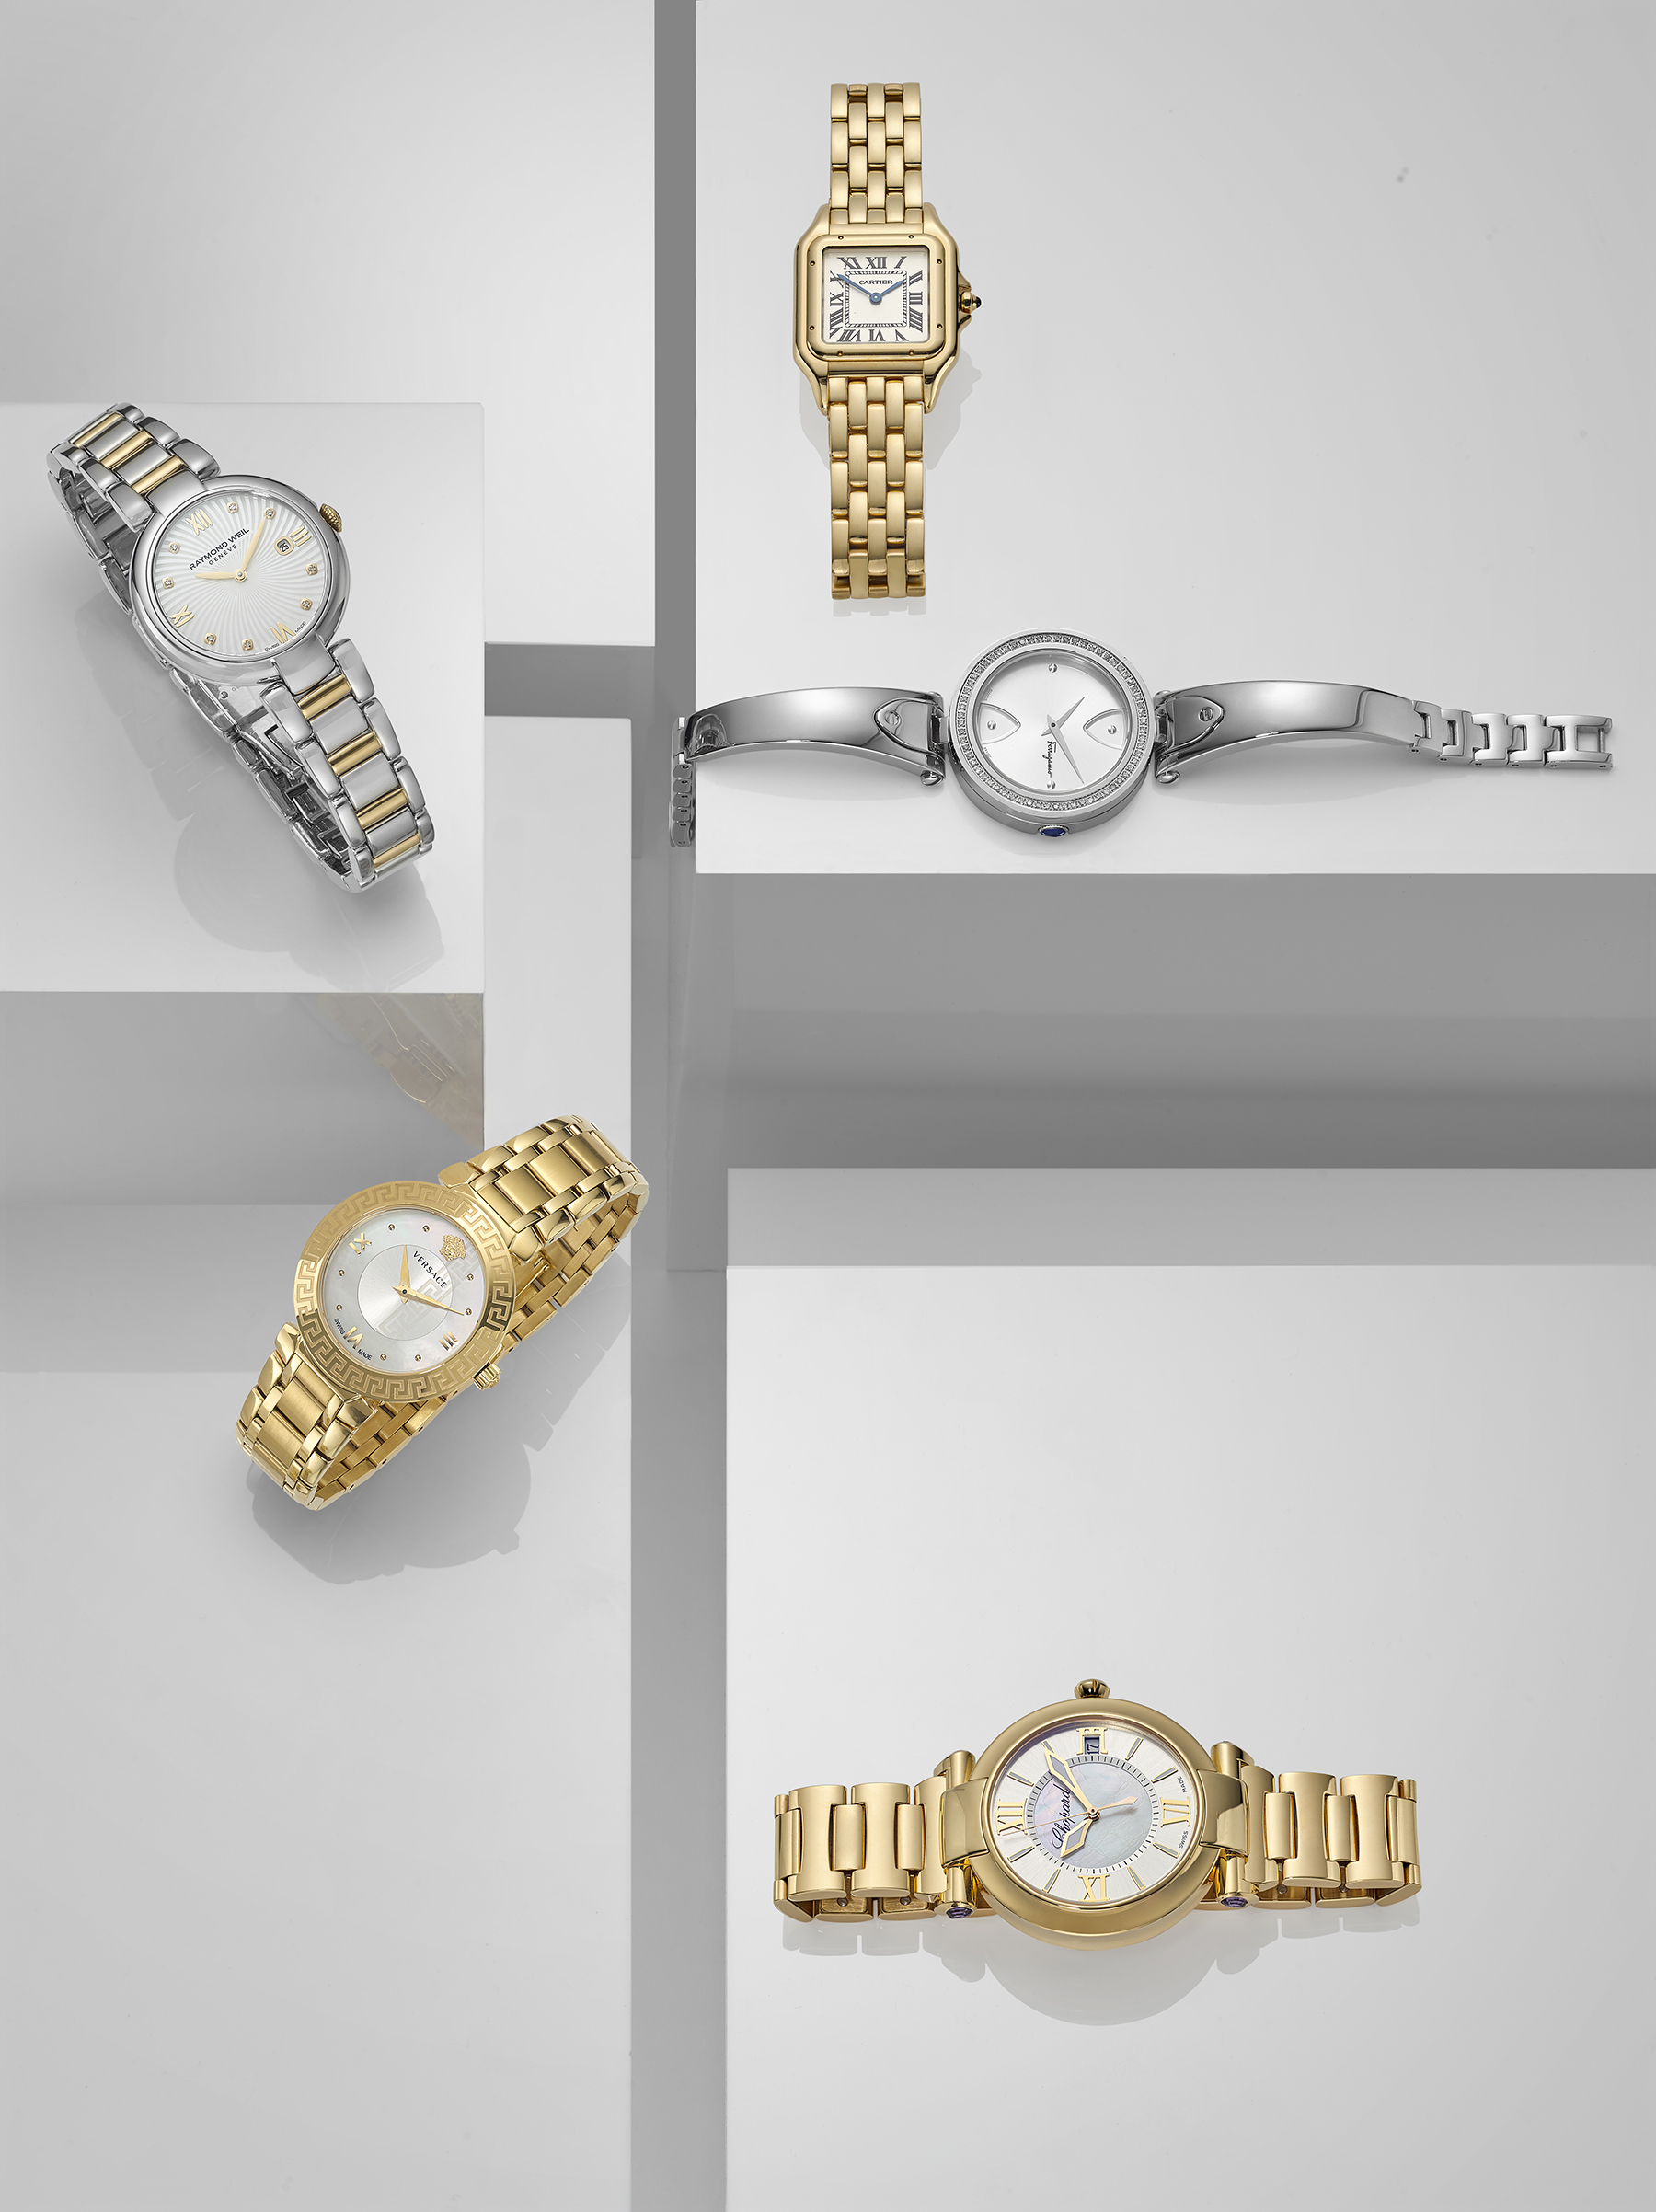 Jewellery photography in london by Chris Howlett. Selection of gold watches placed on glossy white neutral background. Advertising style product photography shot in London photo studio